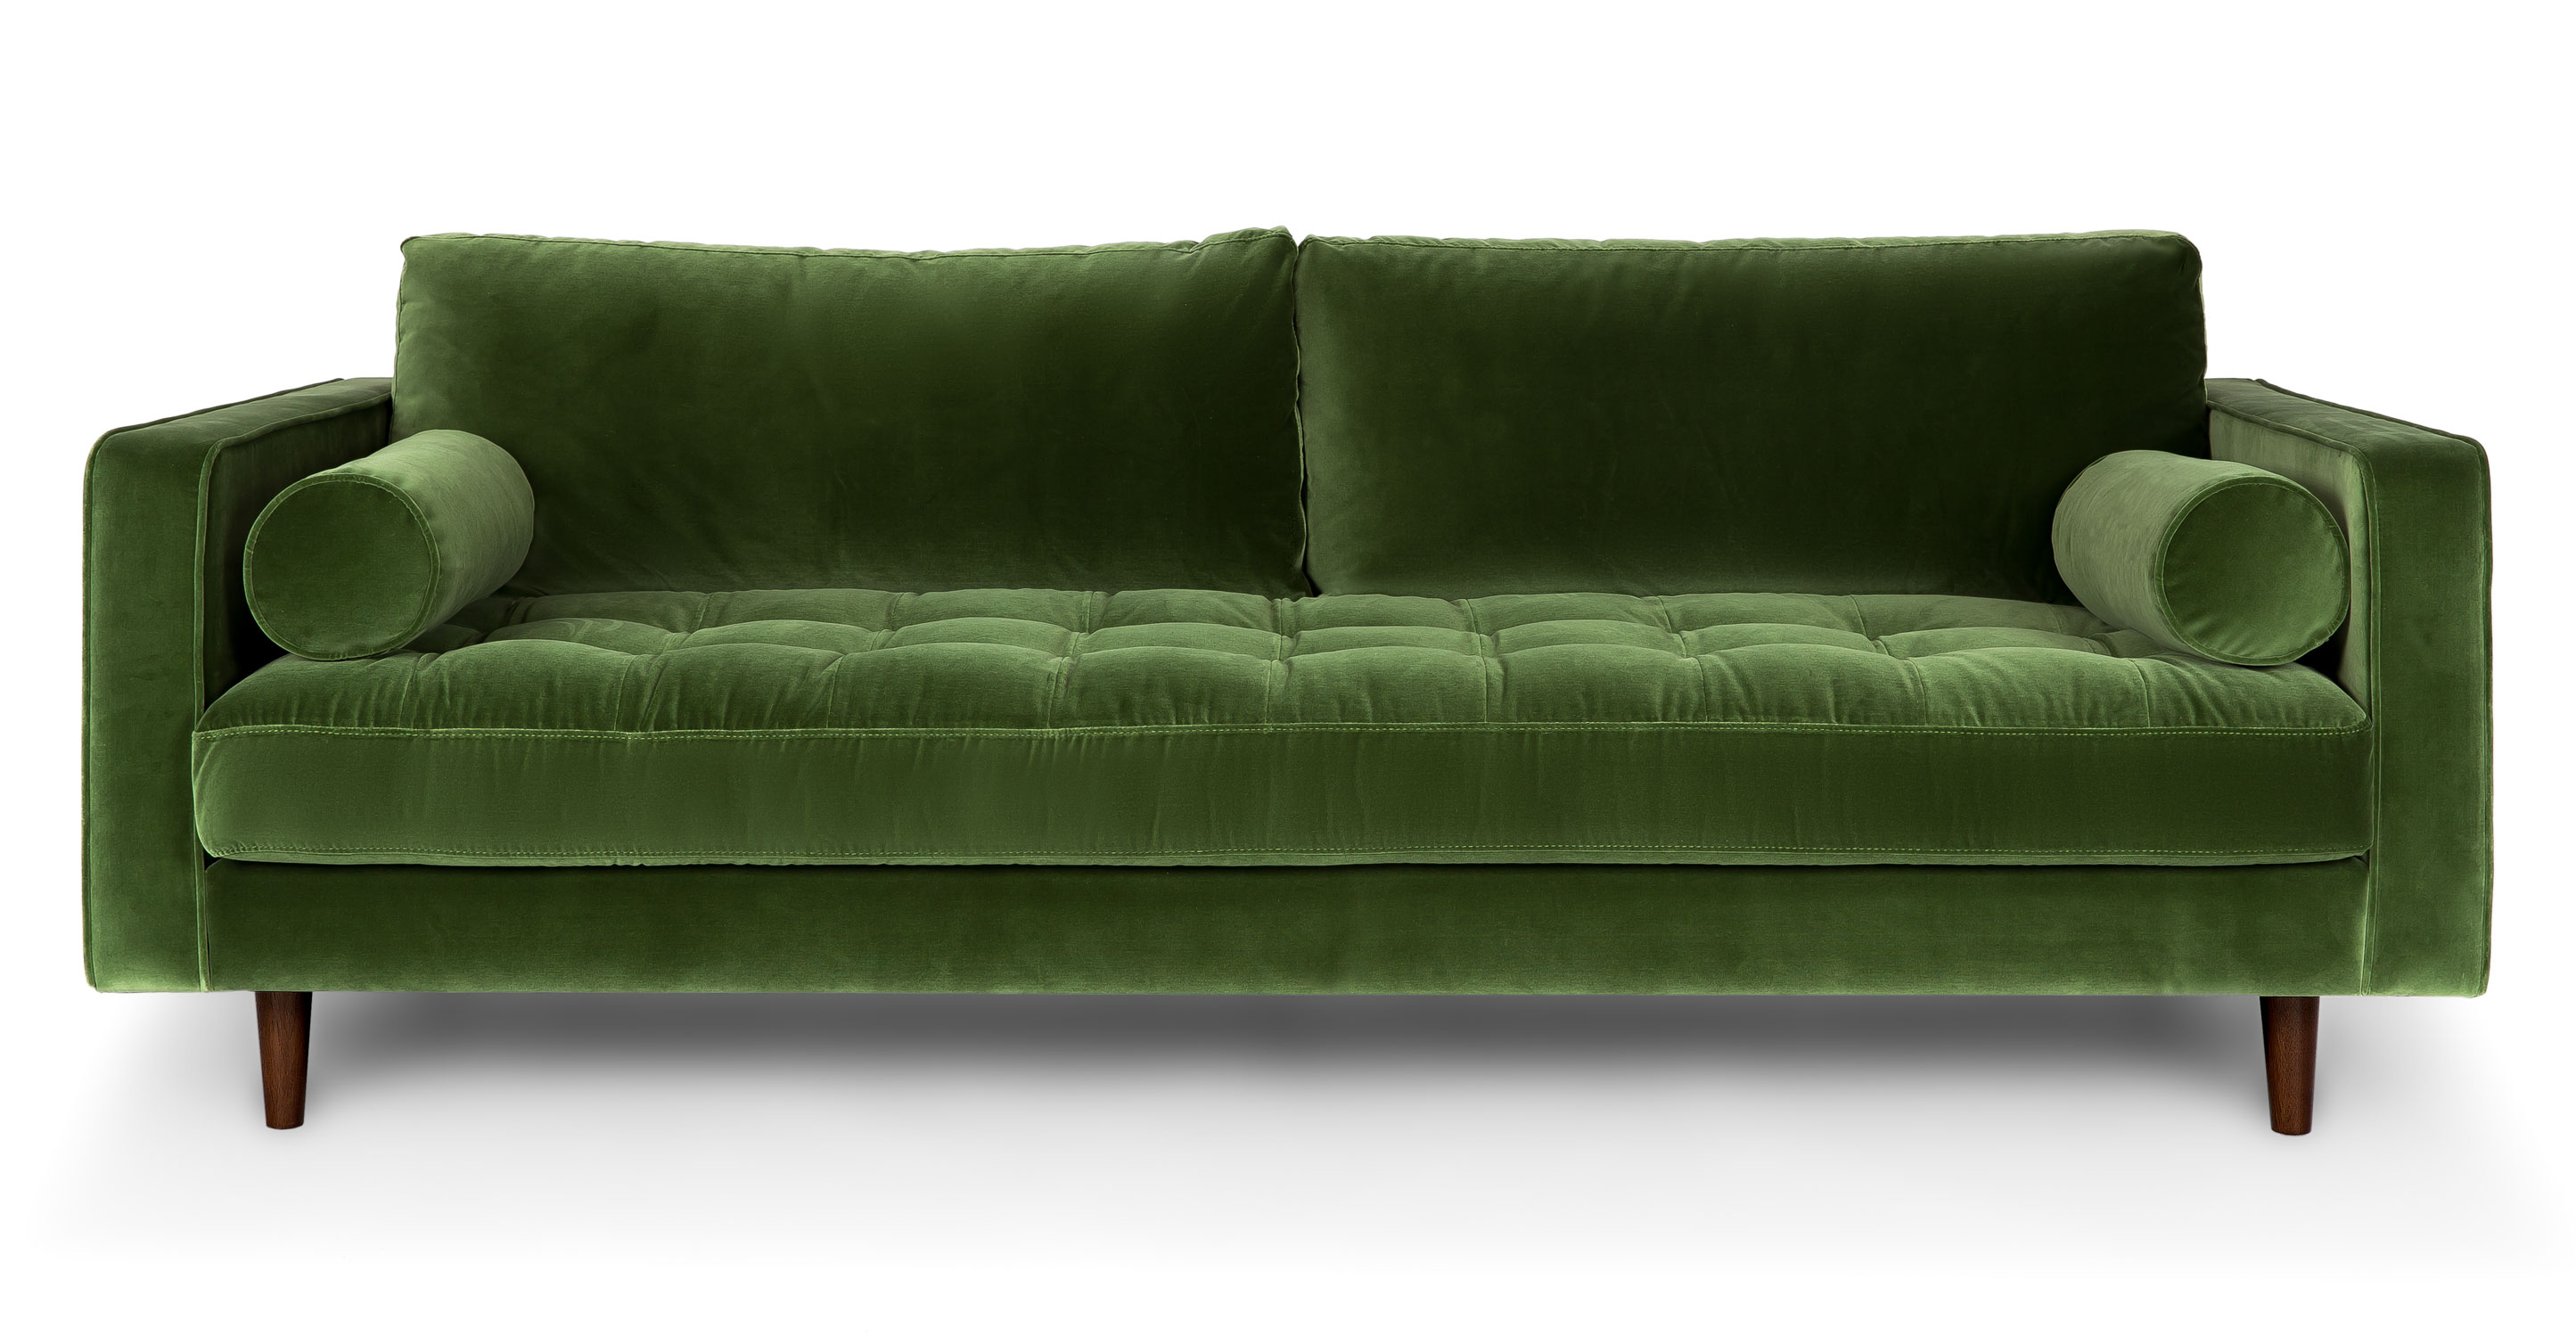 sven grass green sofa - sofas - article | modern, mid-century and IPGTVJN